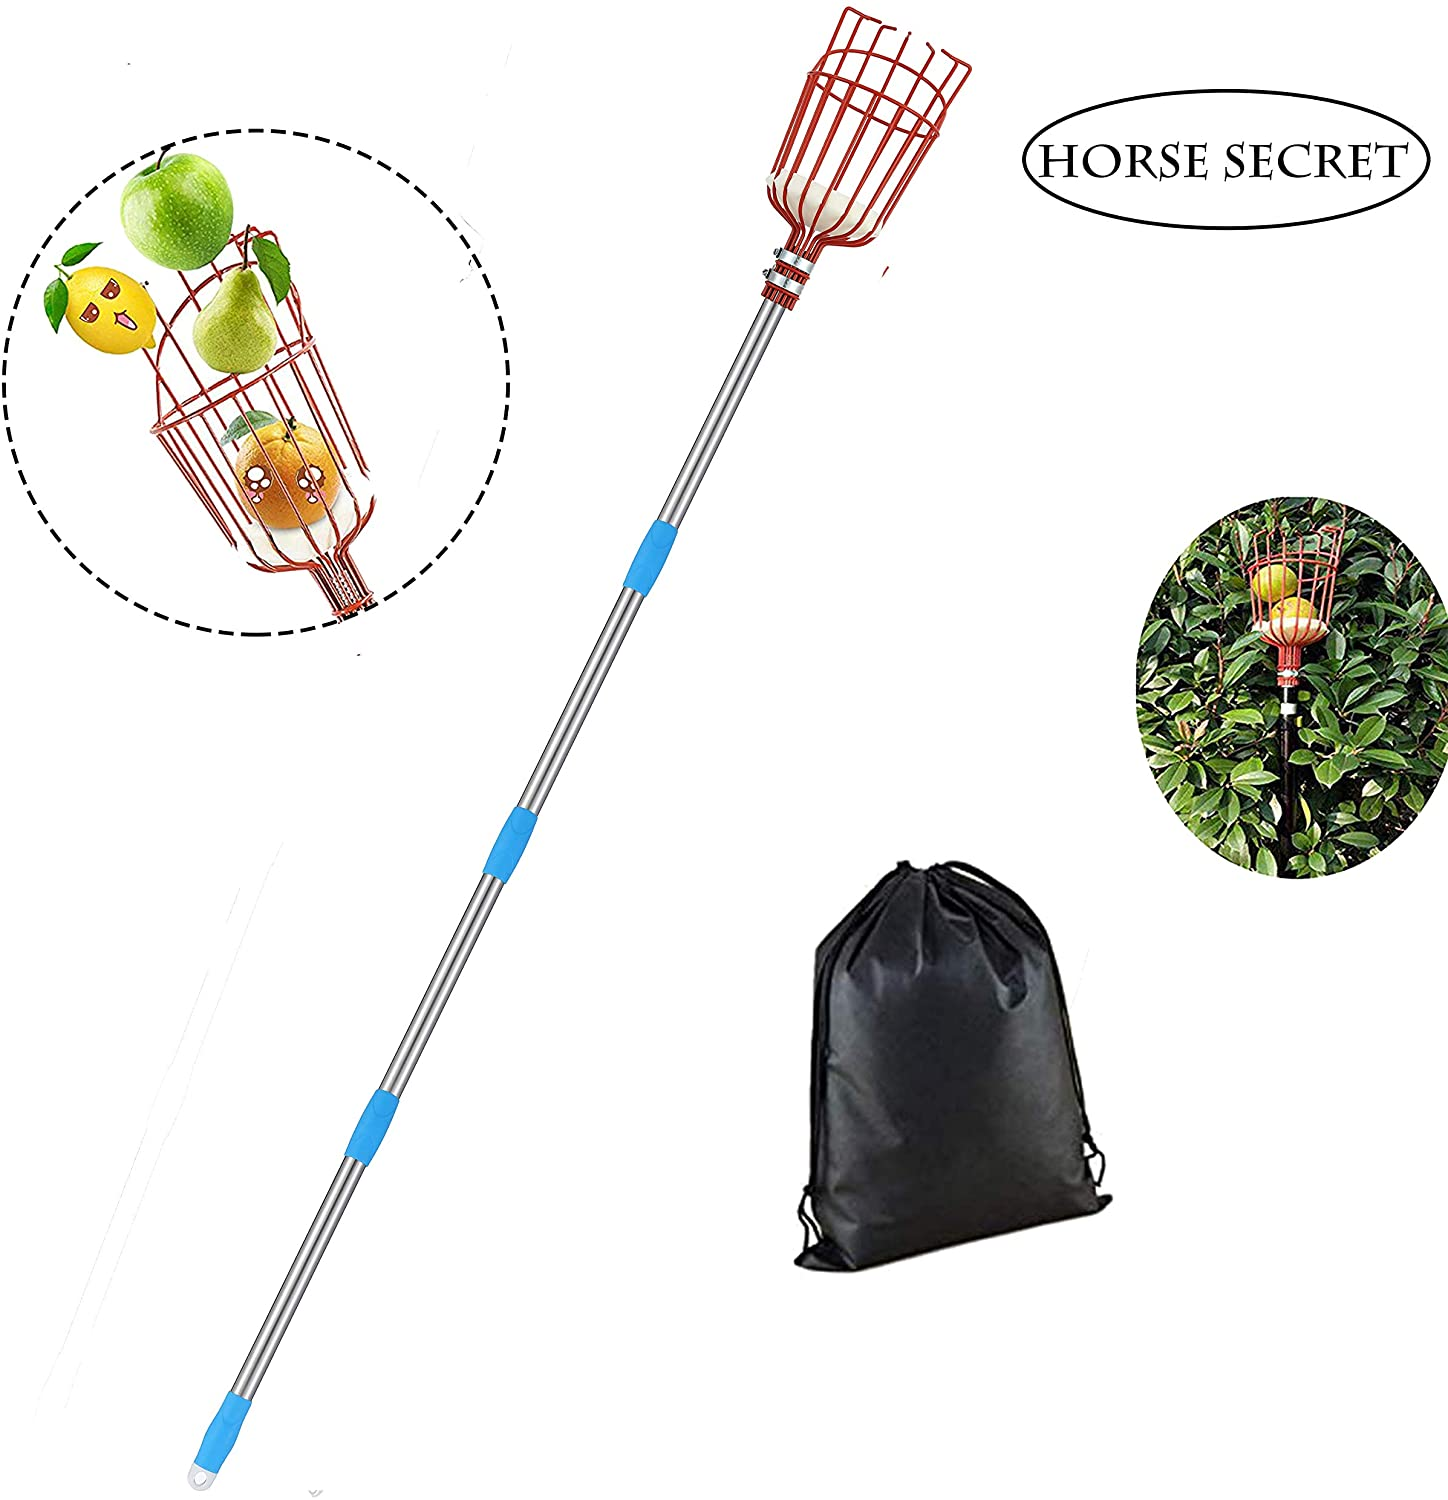 HORSE SECRET Fruit Picker Tool-5.5 FT Adjustable Fruit Picker with Basket Apple Orange Pear Picker with Light-Weight Stainless Steel Pole and Extra Fruit Carrying Bag